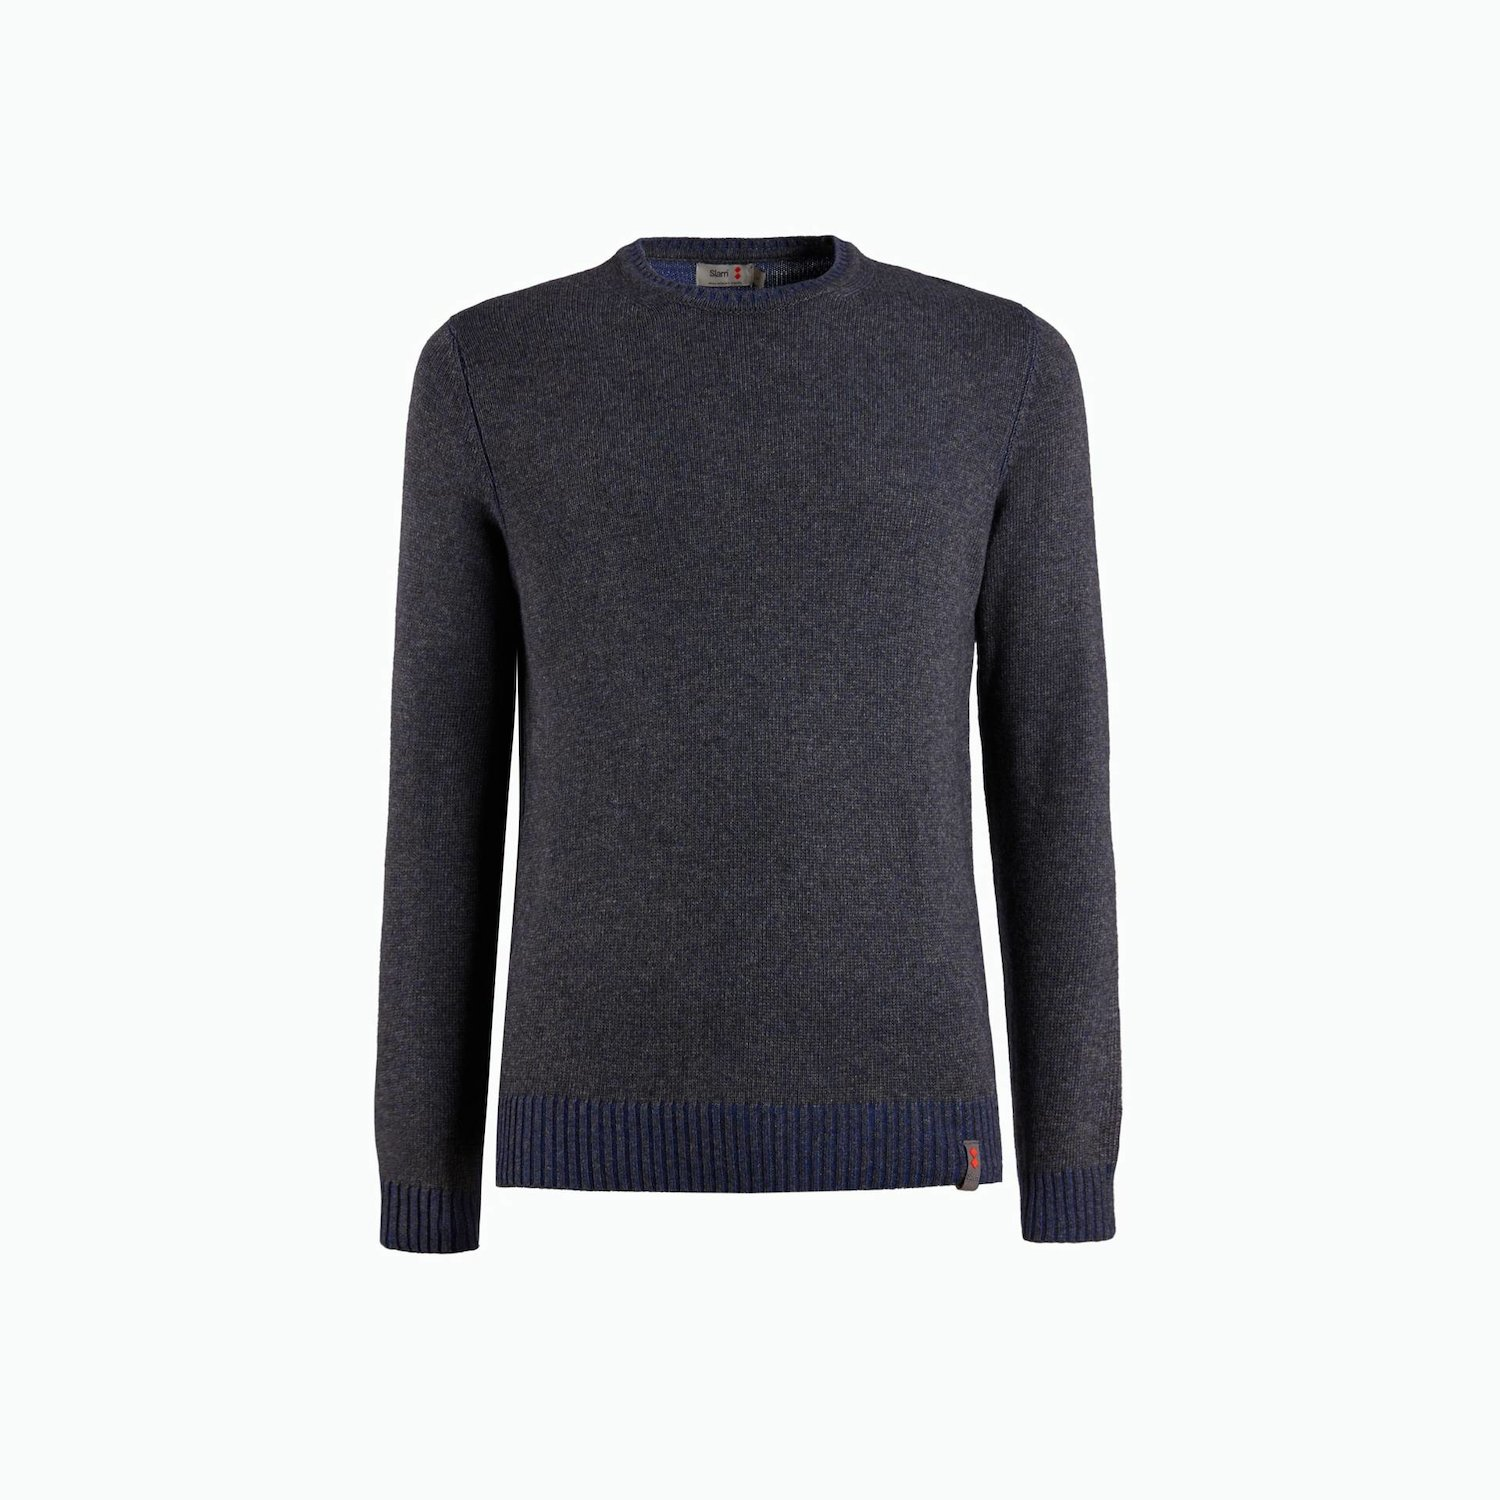 B82 Jumper - Grey Melange / Navy